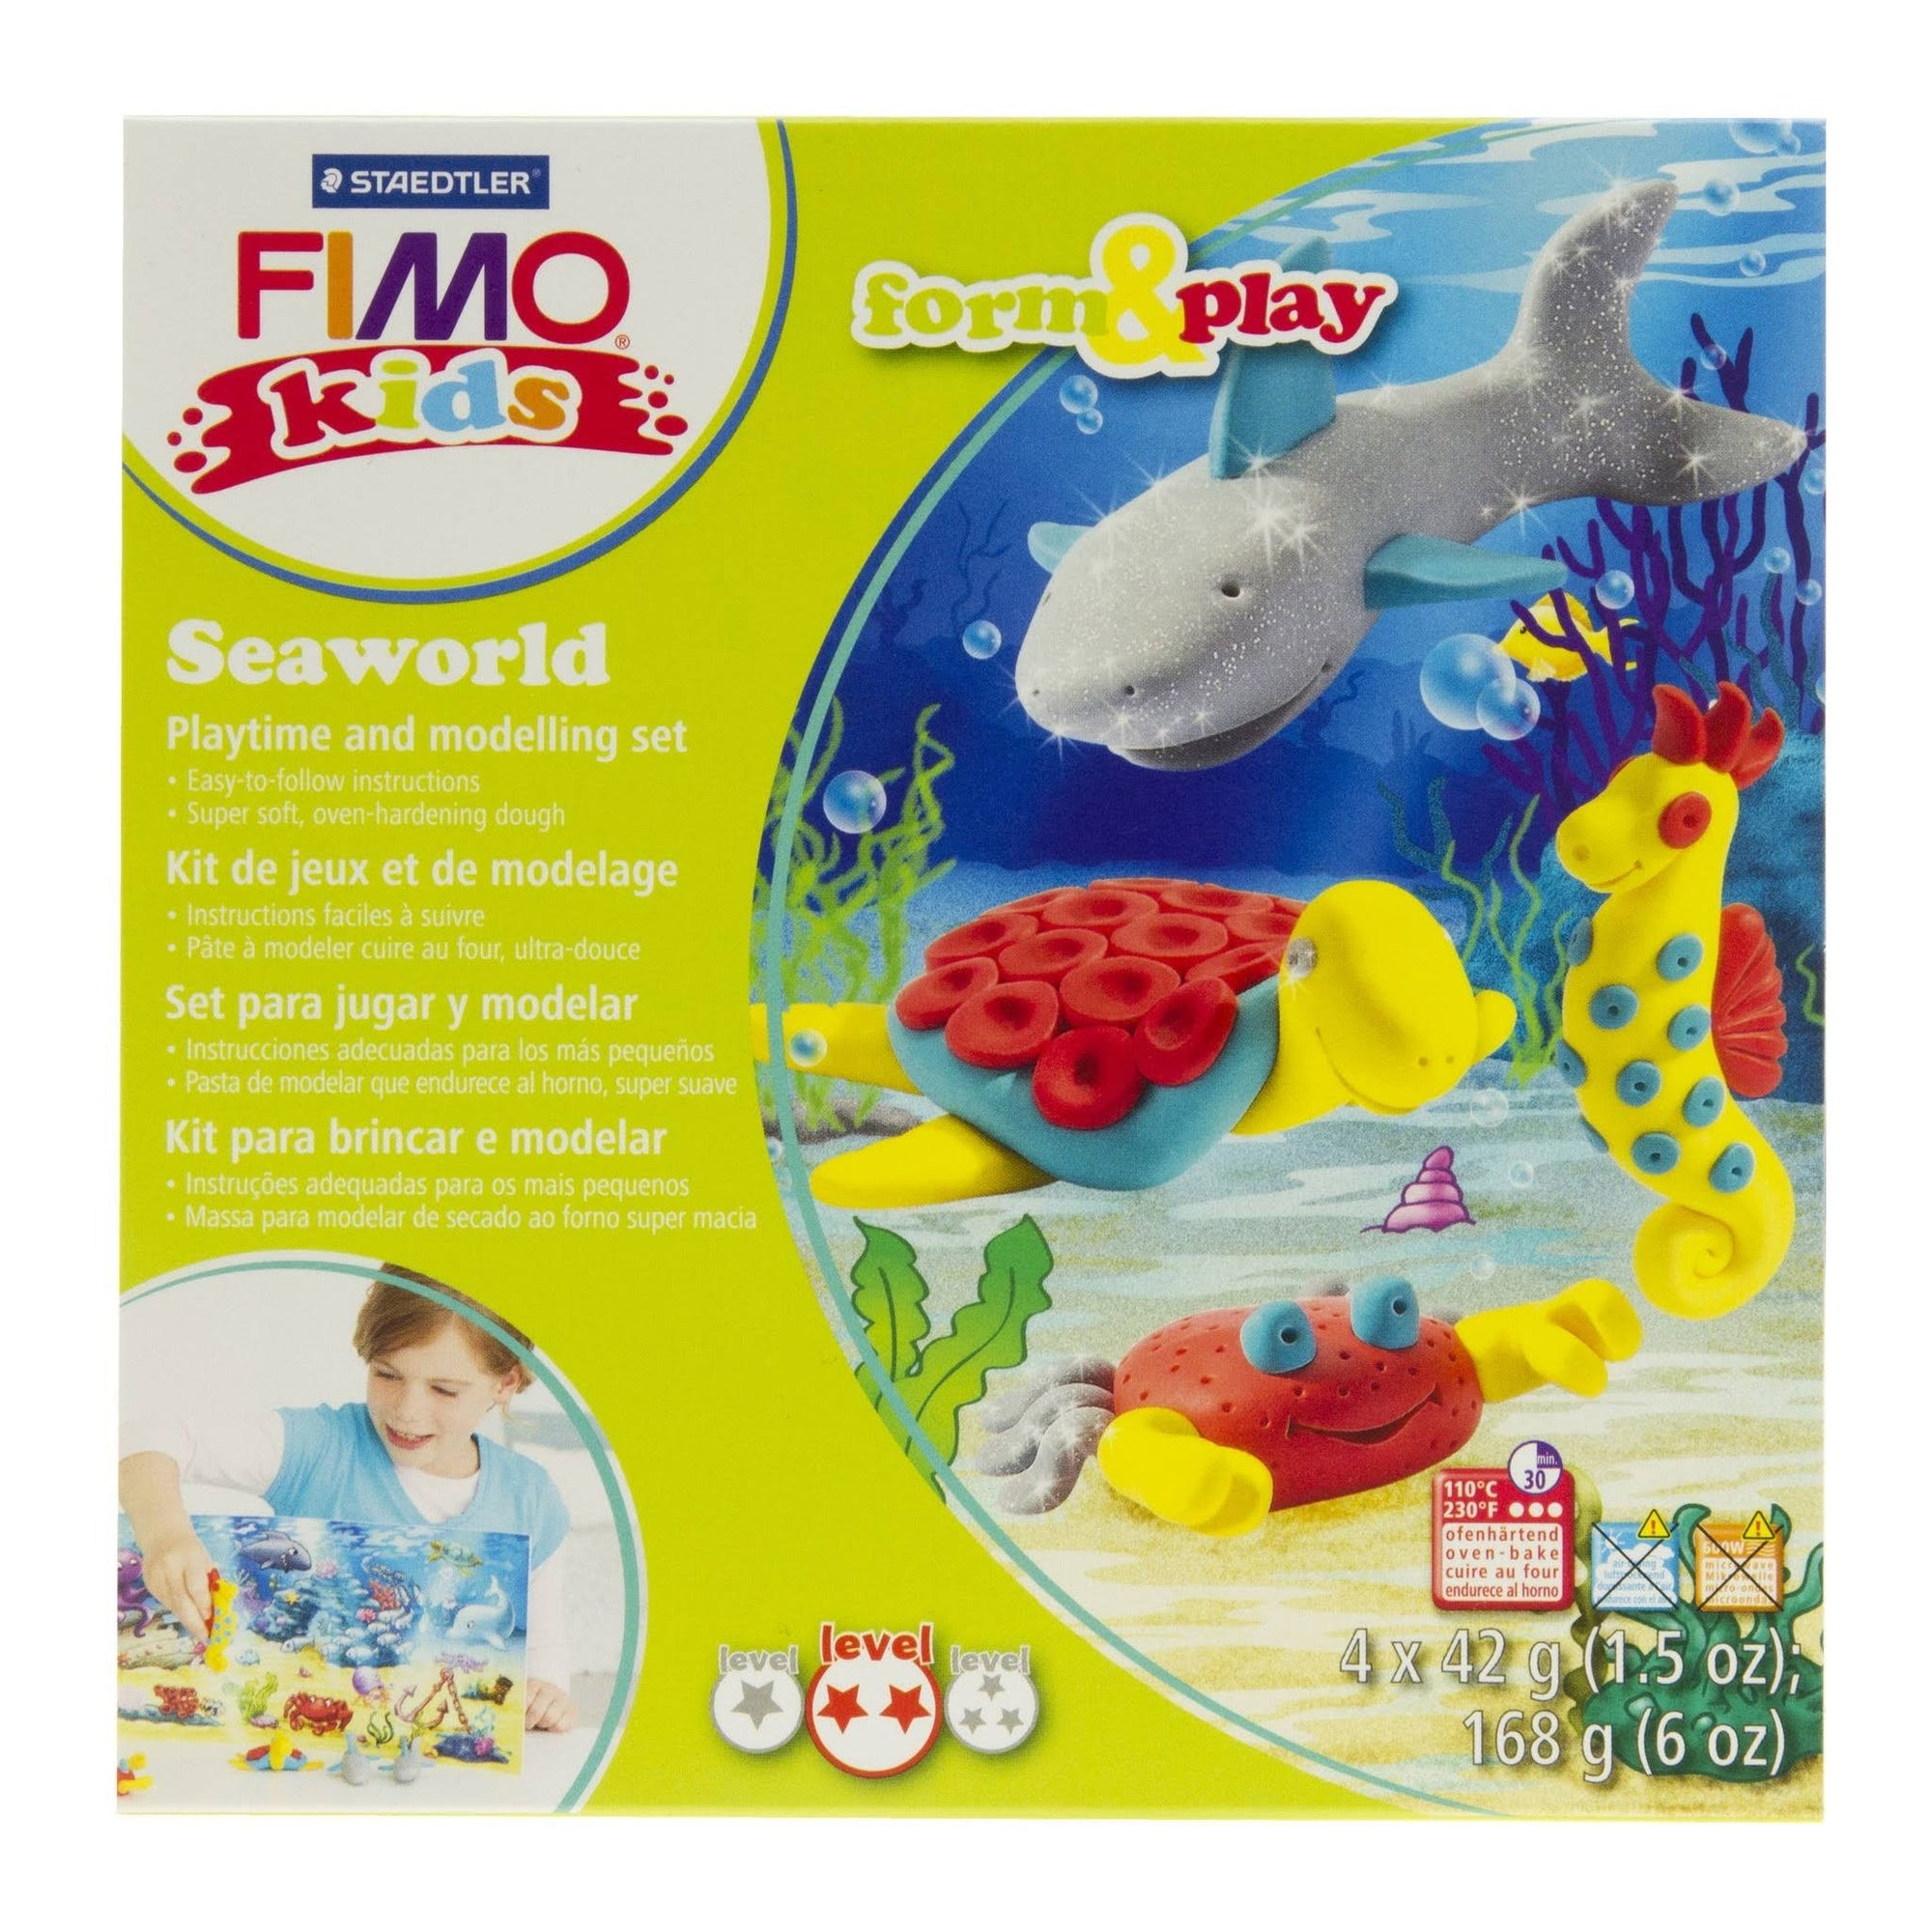 Staedtler Fimo Kids Form & Play Set - Seaworld